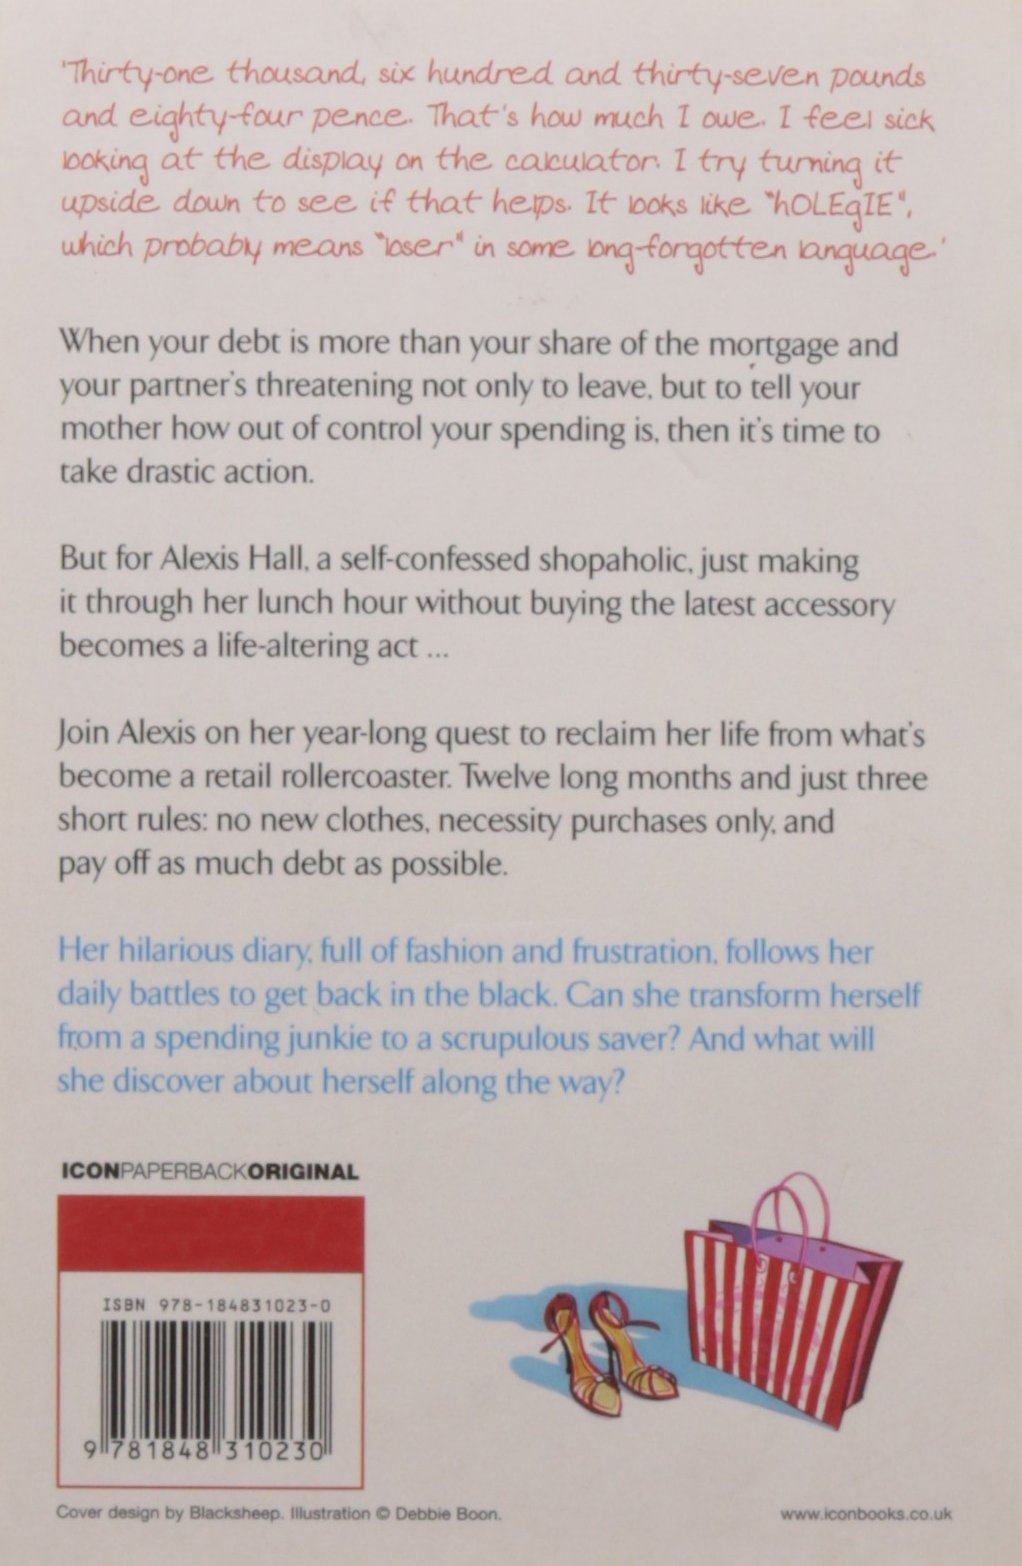 83cdfe82a0bd In the Red  The Diary of a Recovering Shopaholic  Amazon.co.uk  Alexis  Hall  9781848310230  Books